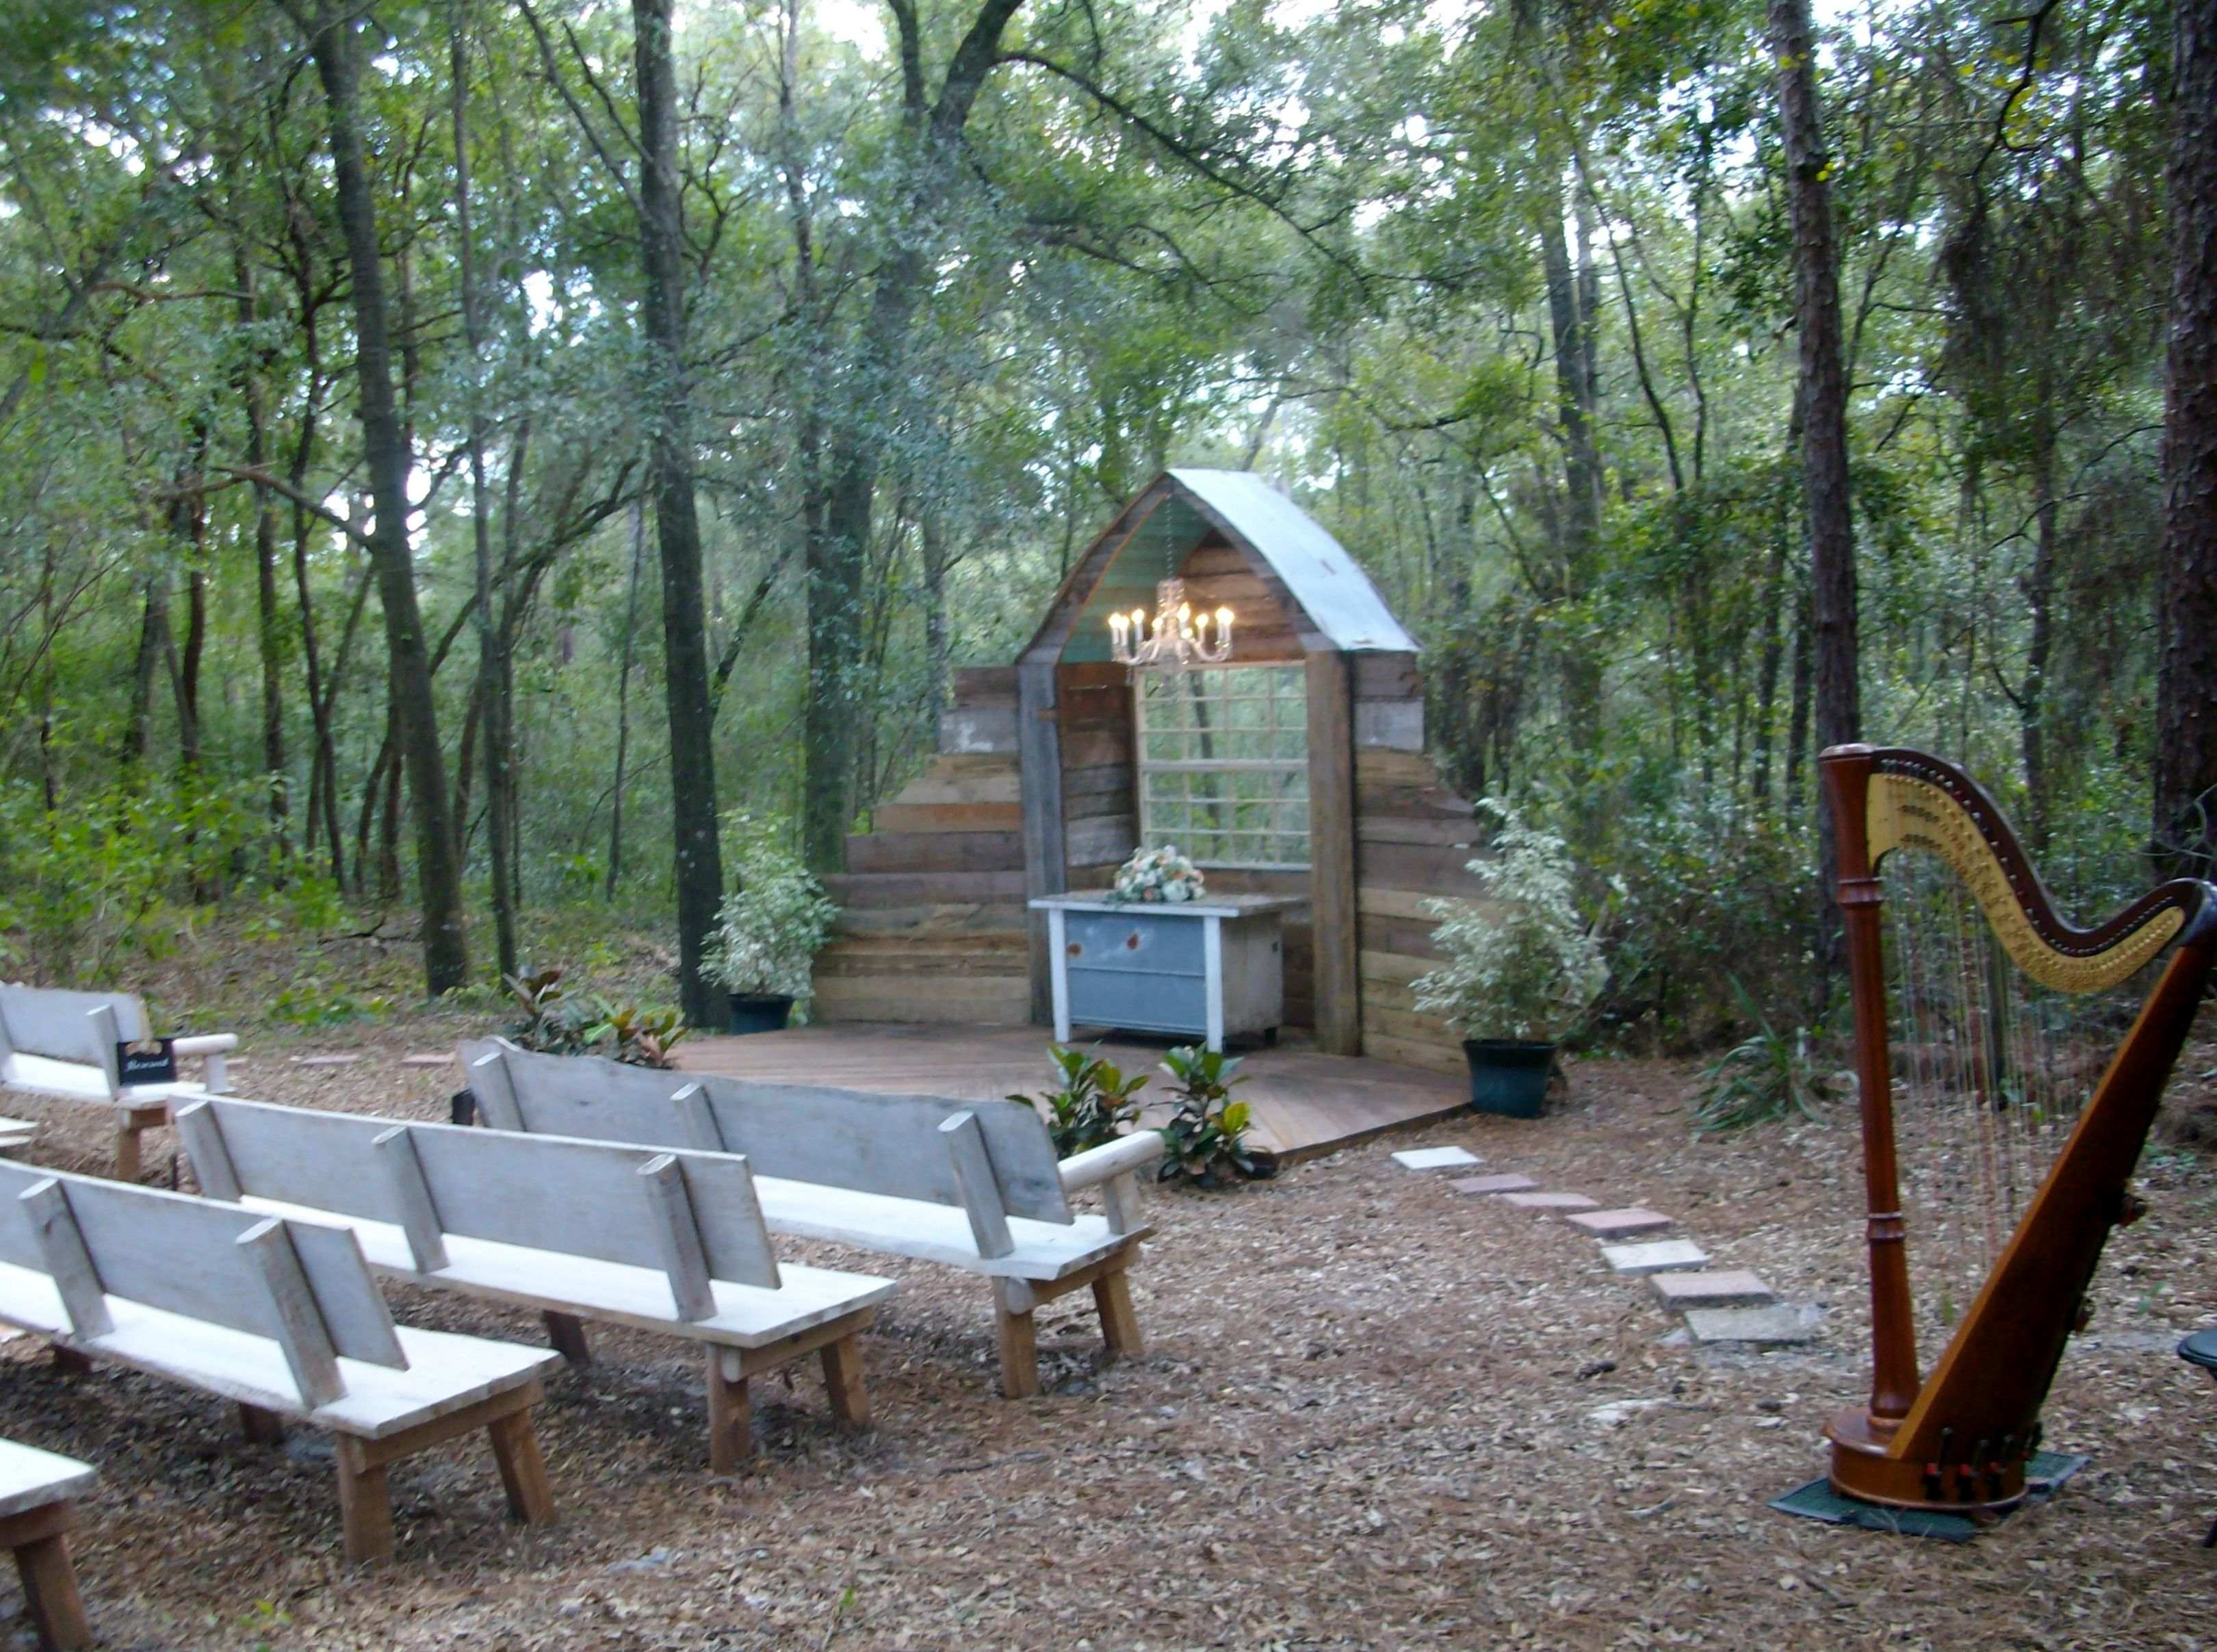 Bridle Oaks Barn in Deland is a natural rustic country ...